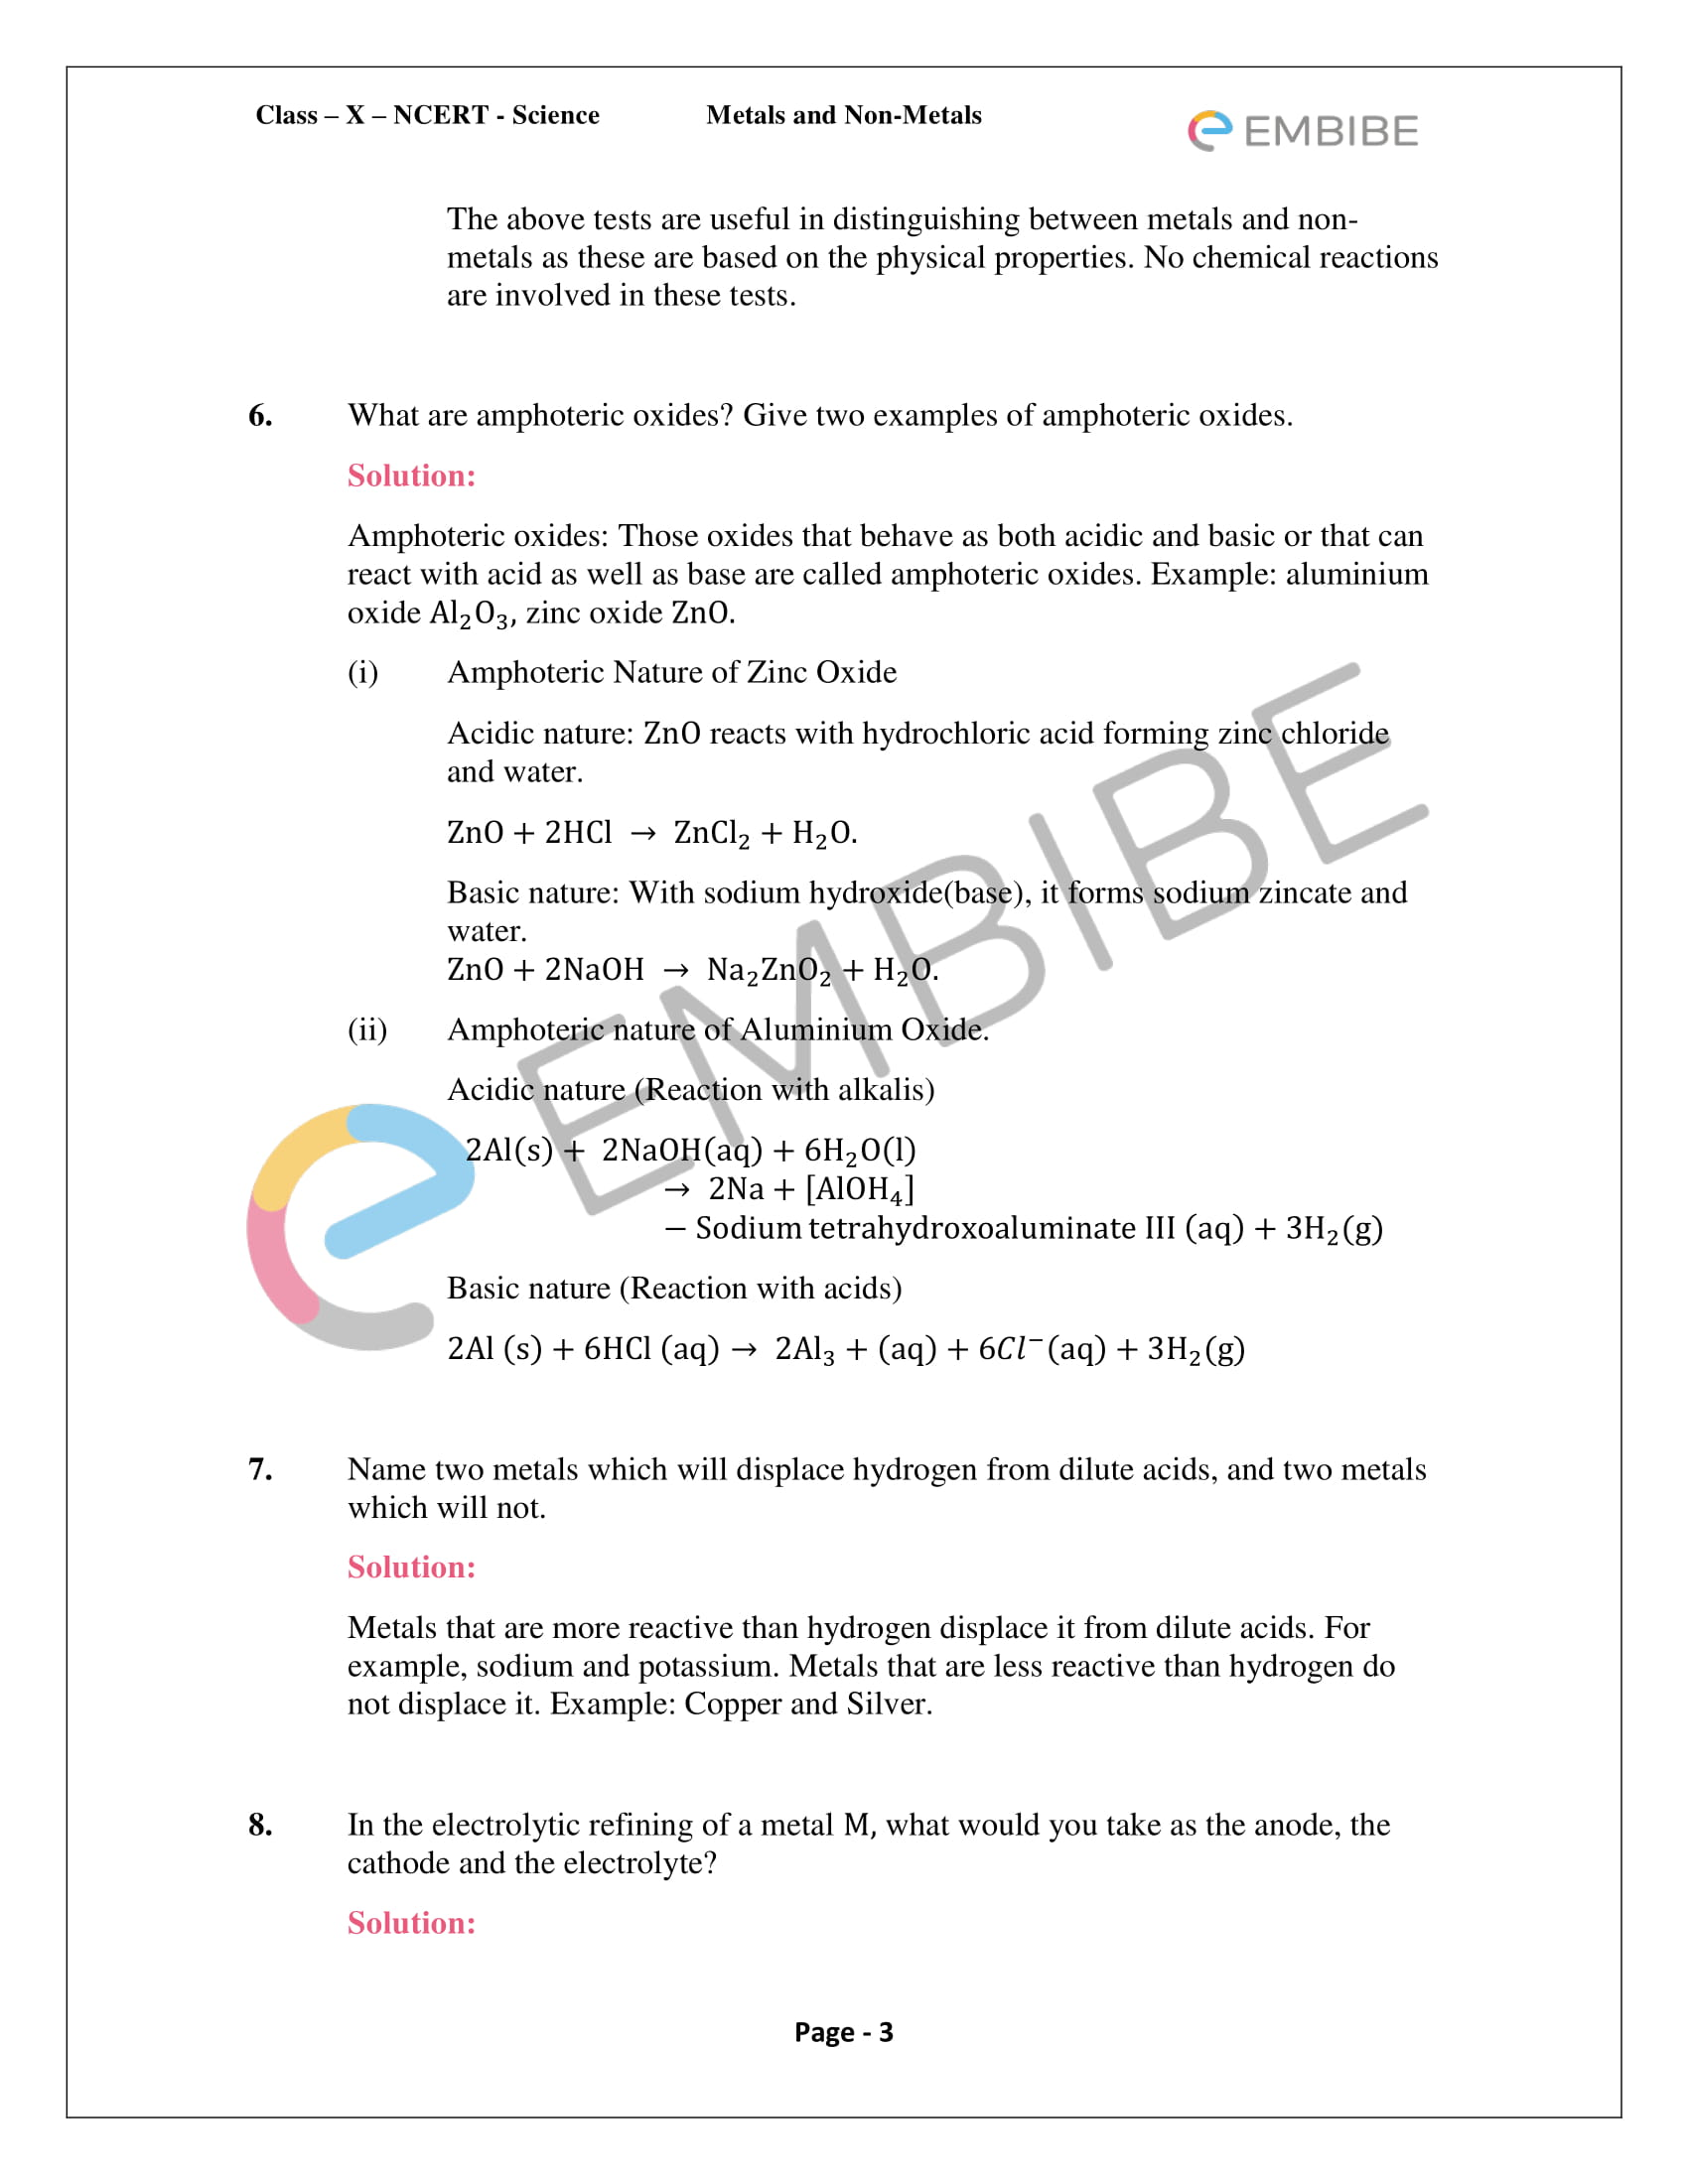 CBSE NCERT Solutions For Class 10 Science Chapter 3: Metals and Non-Metals